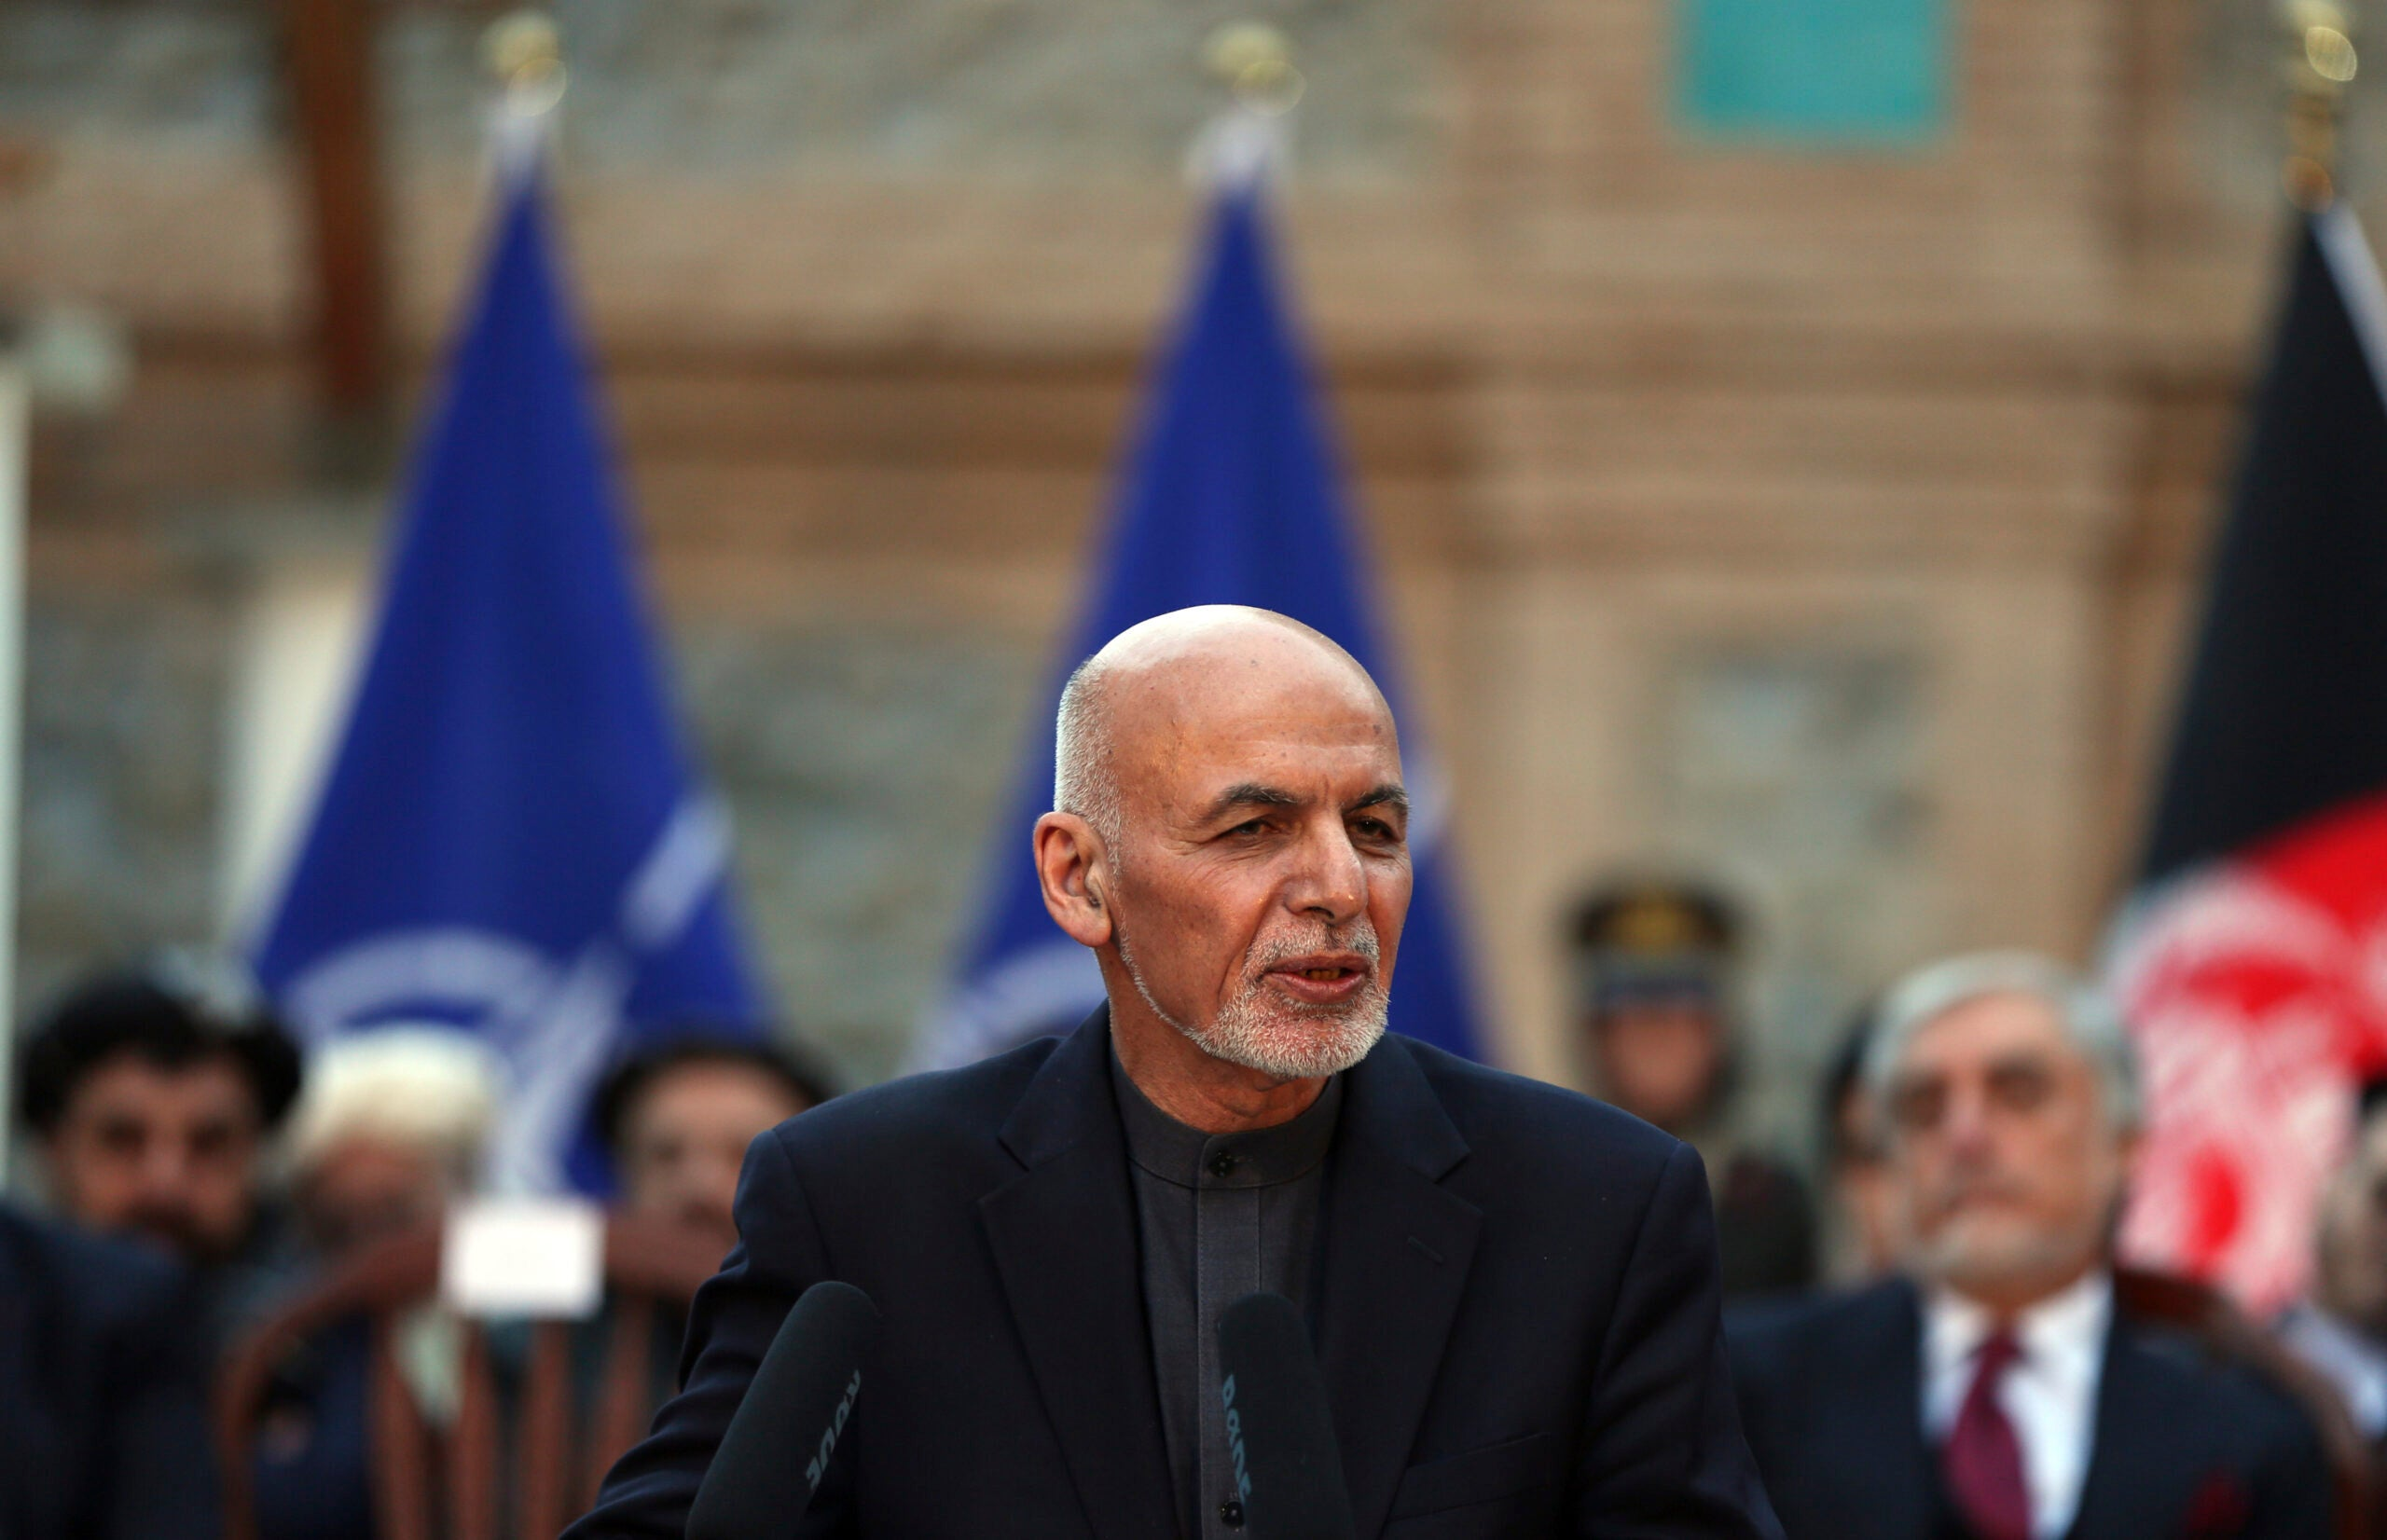 Afghan President vows to expedite release of 2,000 Taliban prisoners